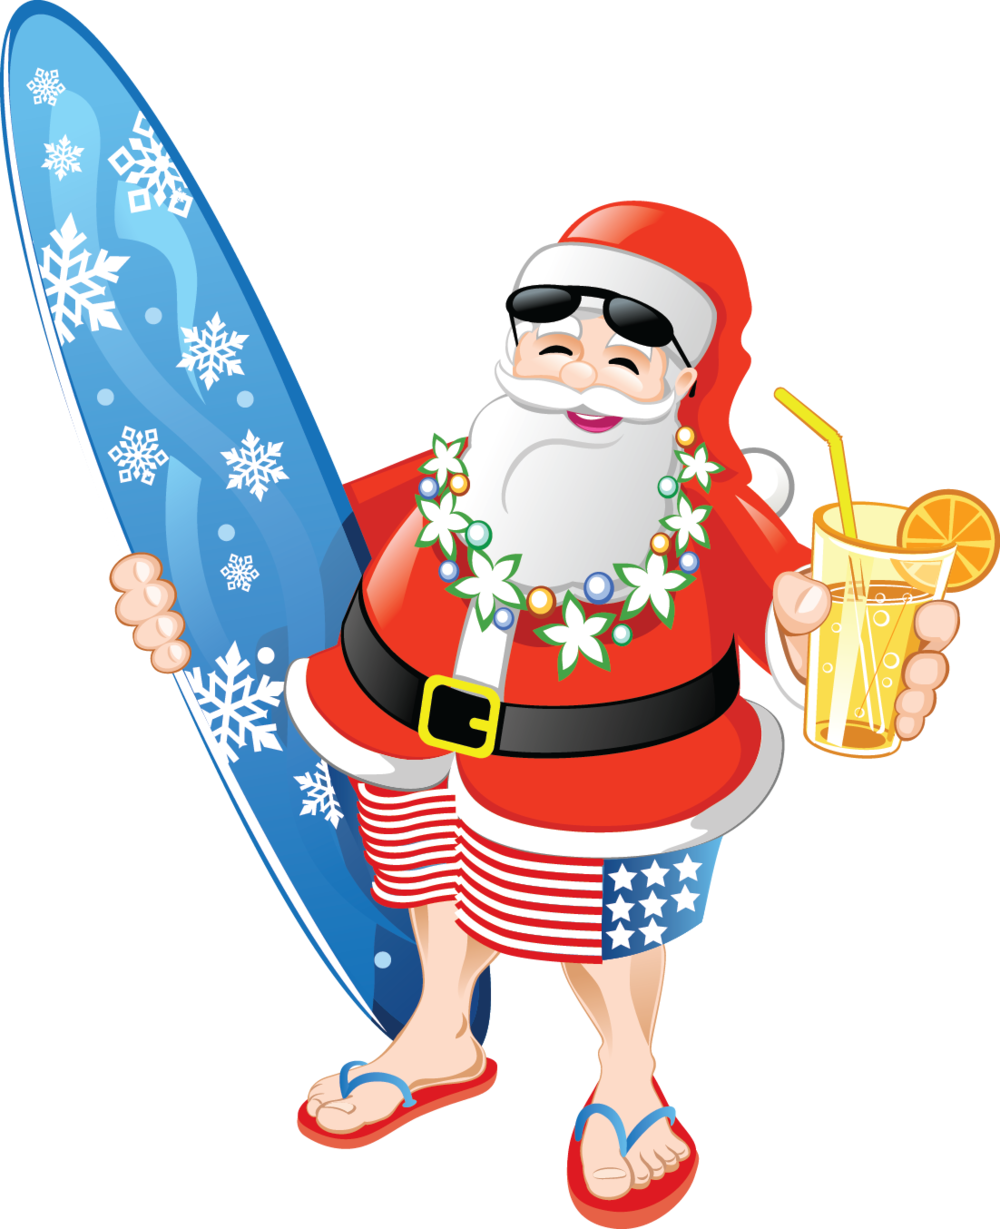 christmas in july santa claus in swim suit clipart.